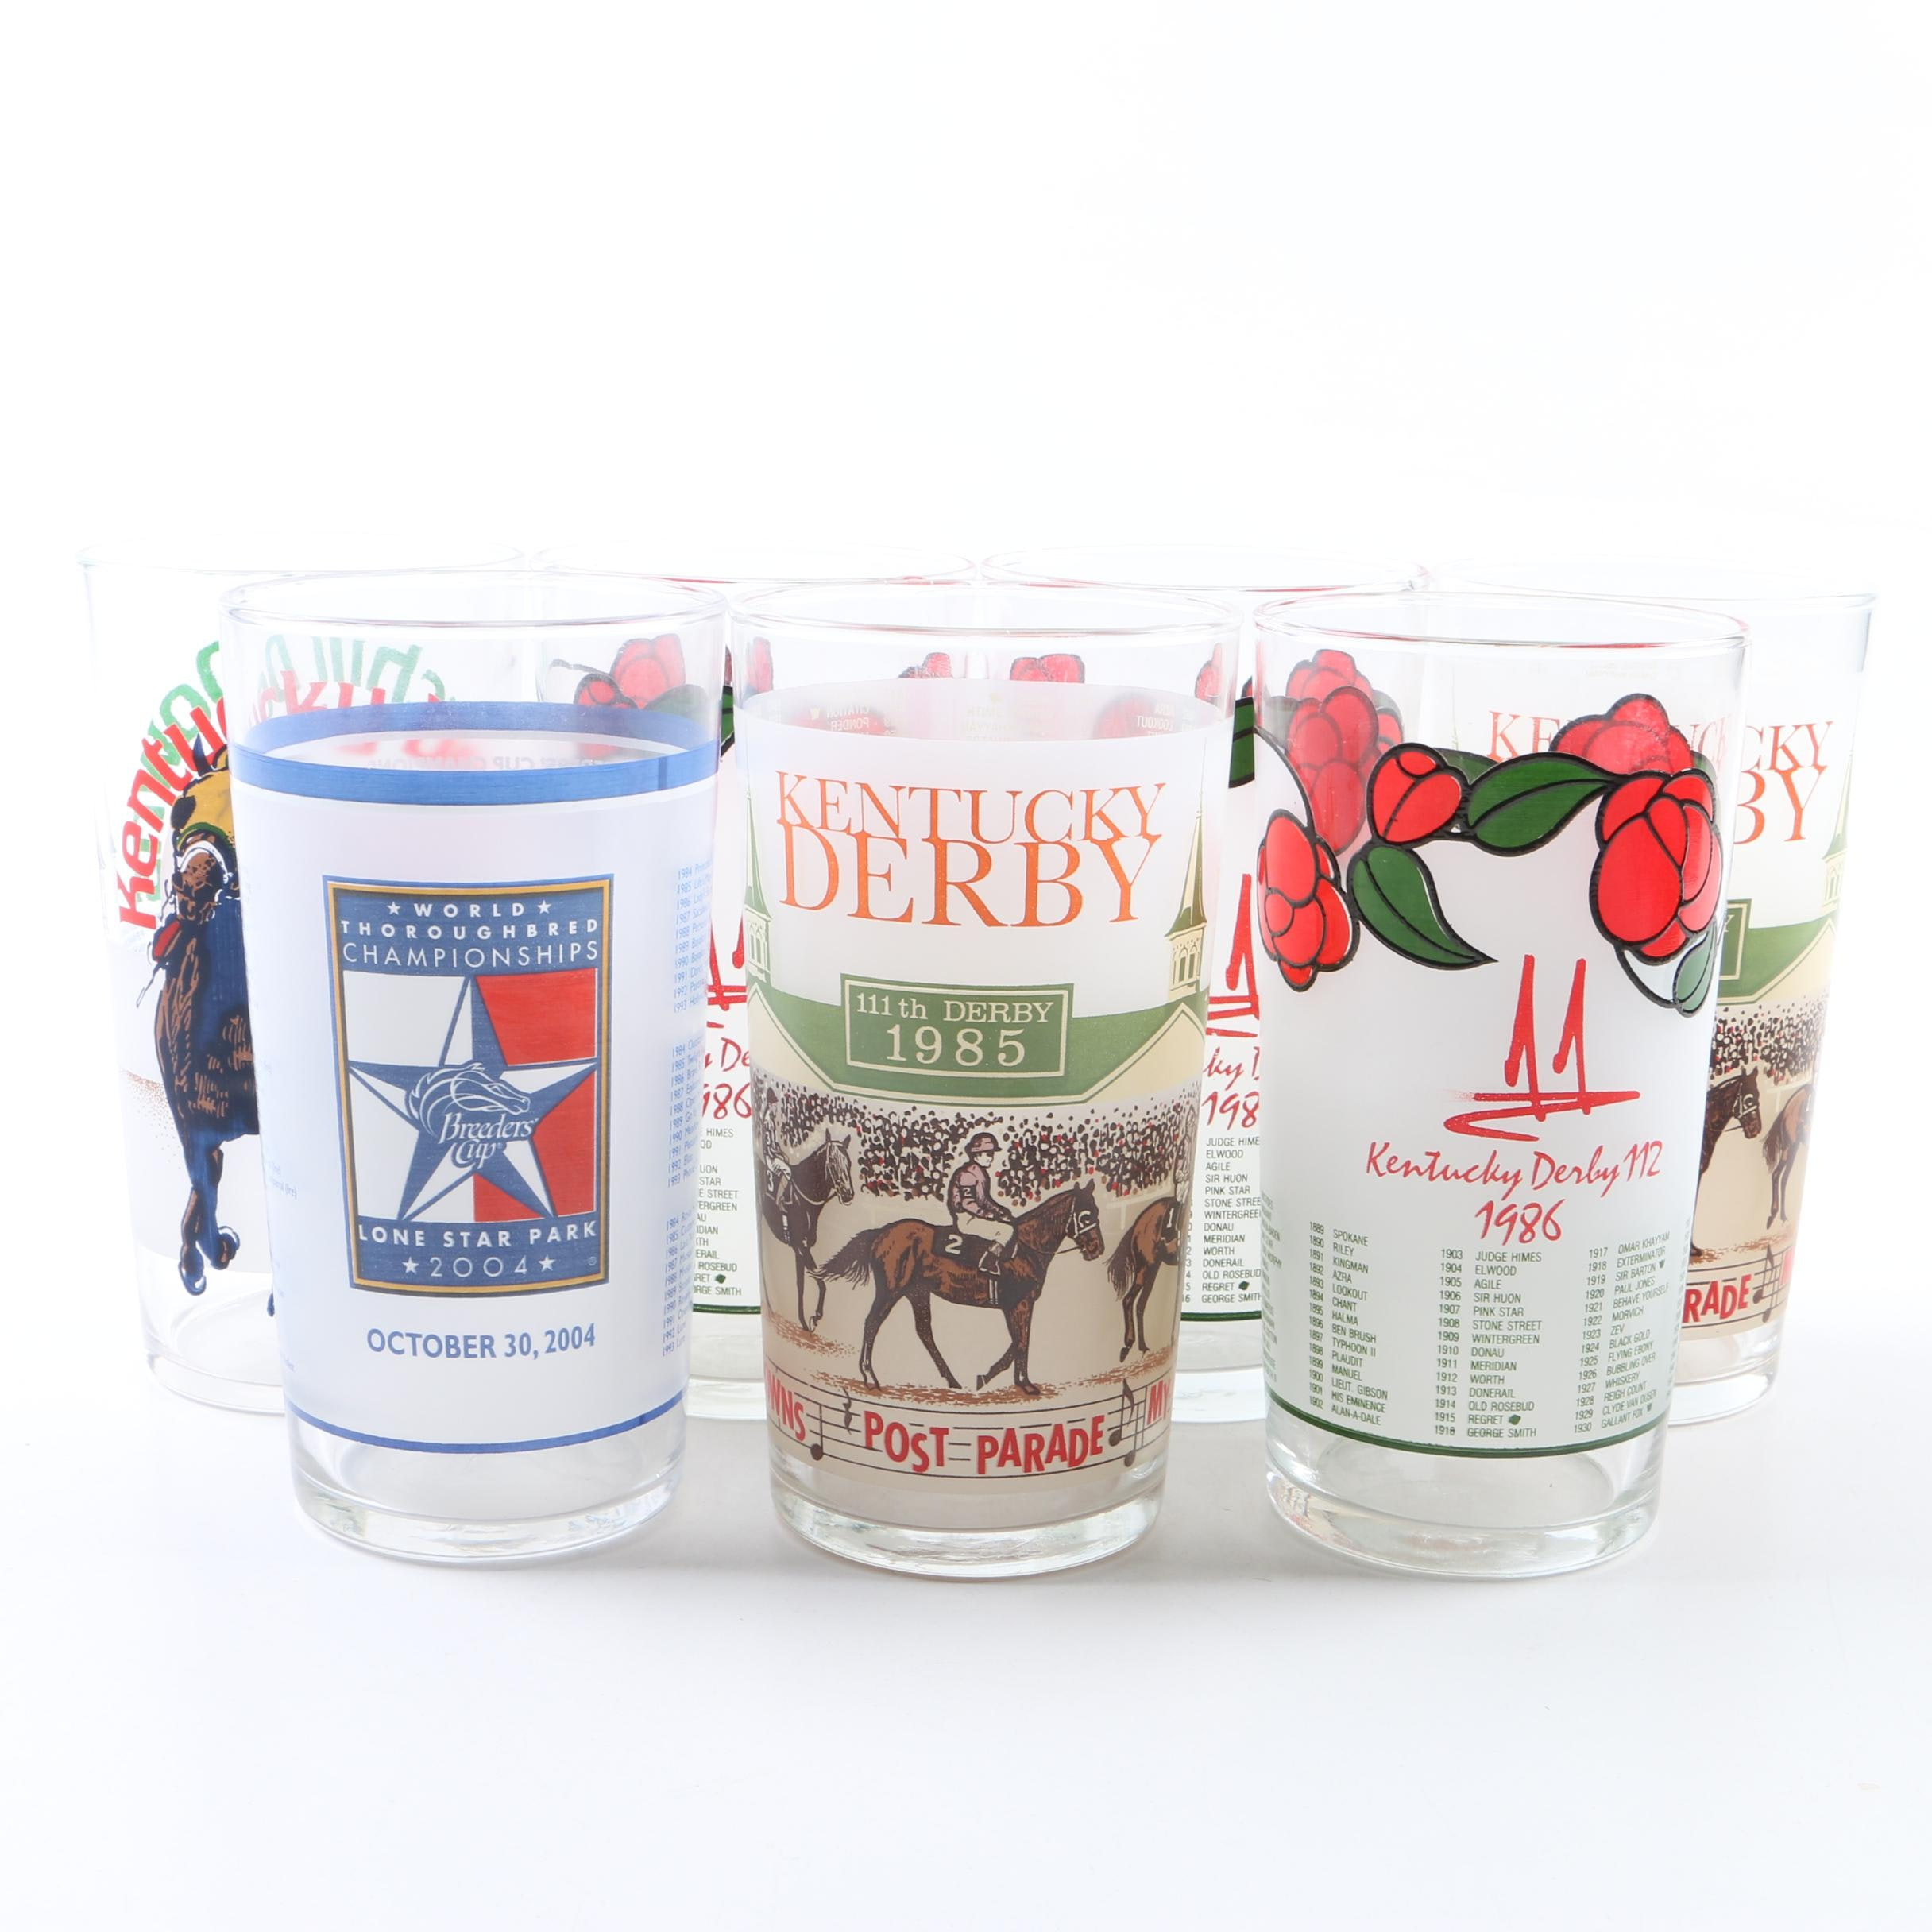 Set of Kentucky Derby Commemorative Horse Racing Glasses